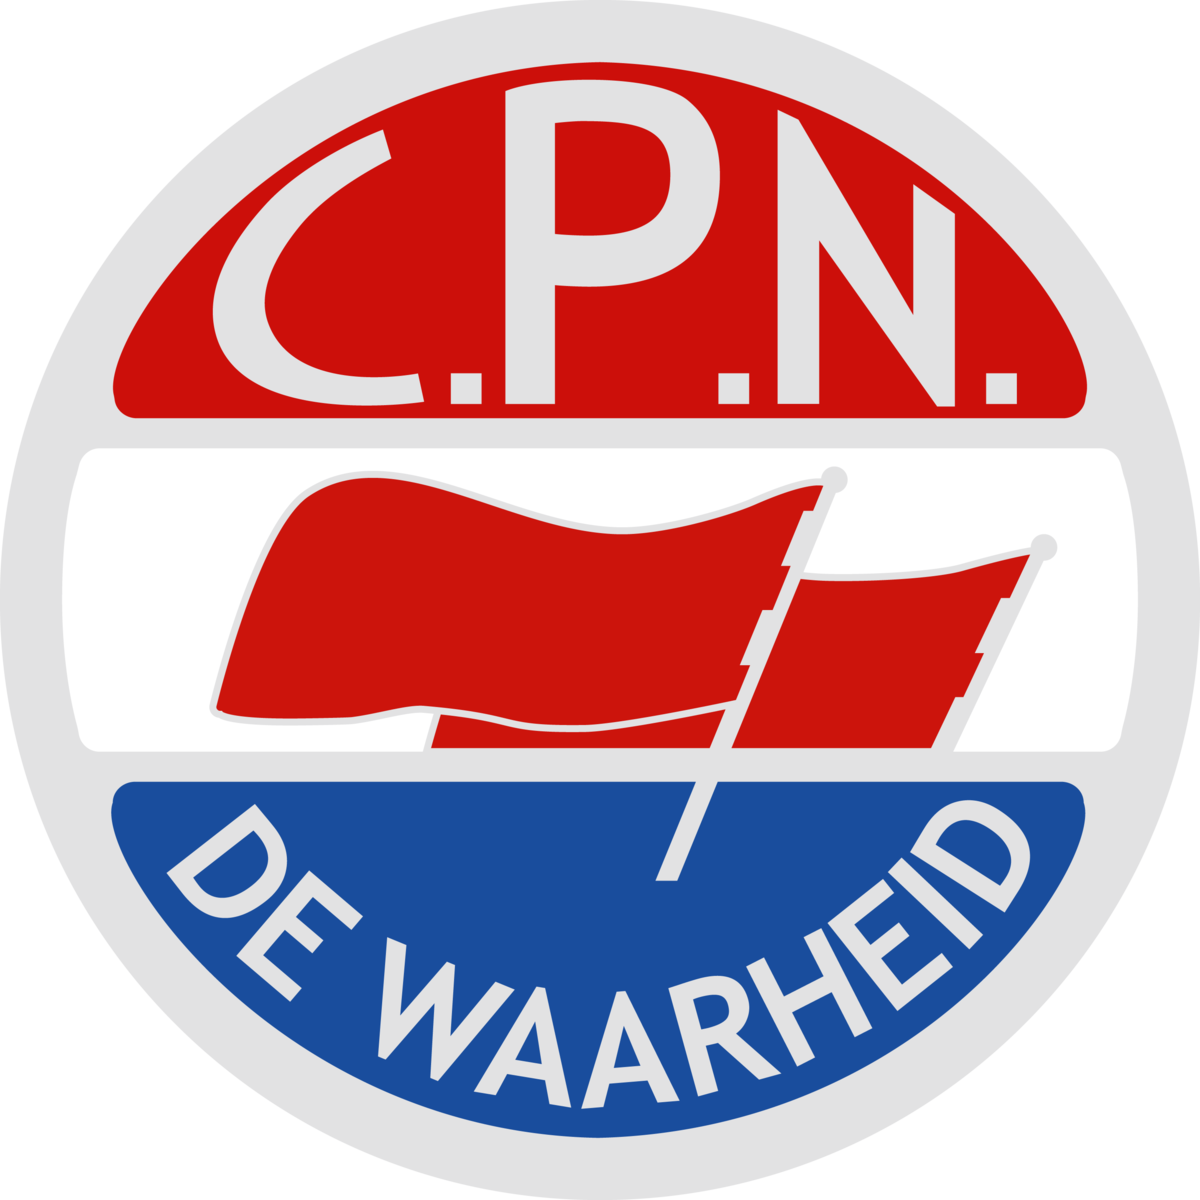 Communist Party of the Netherlands - Wikipedia